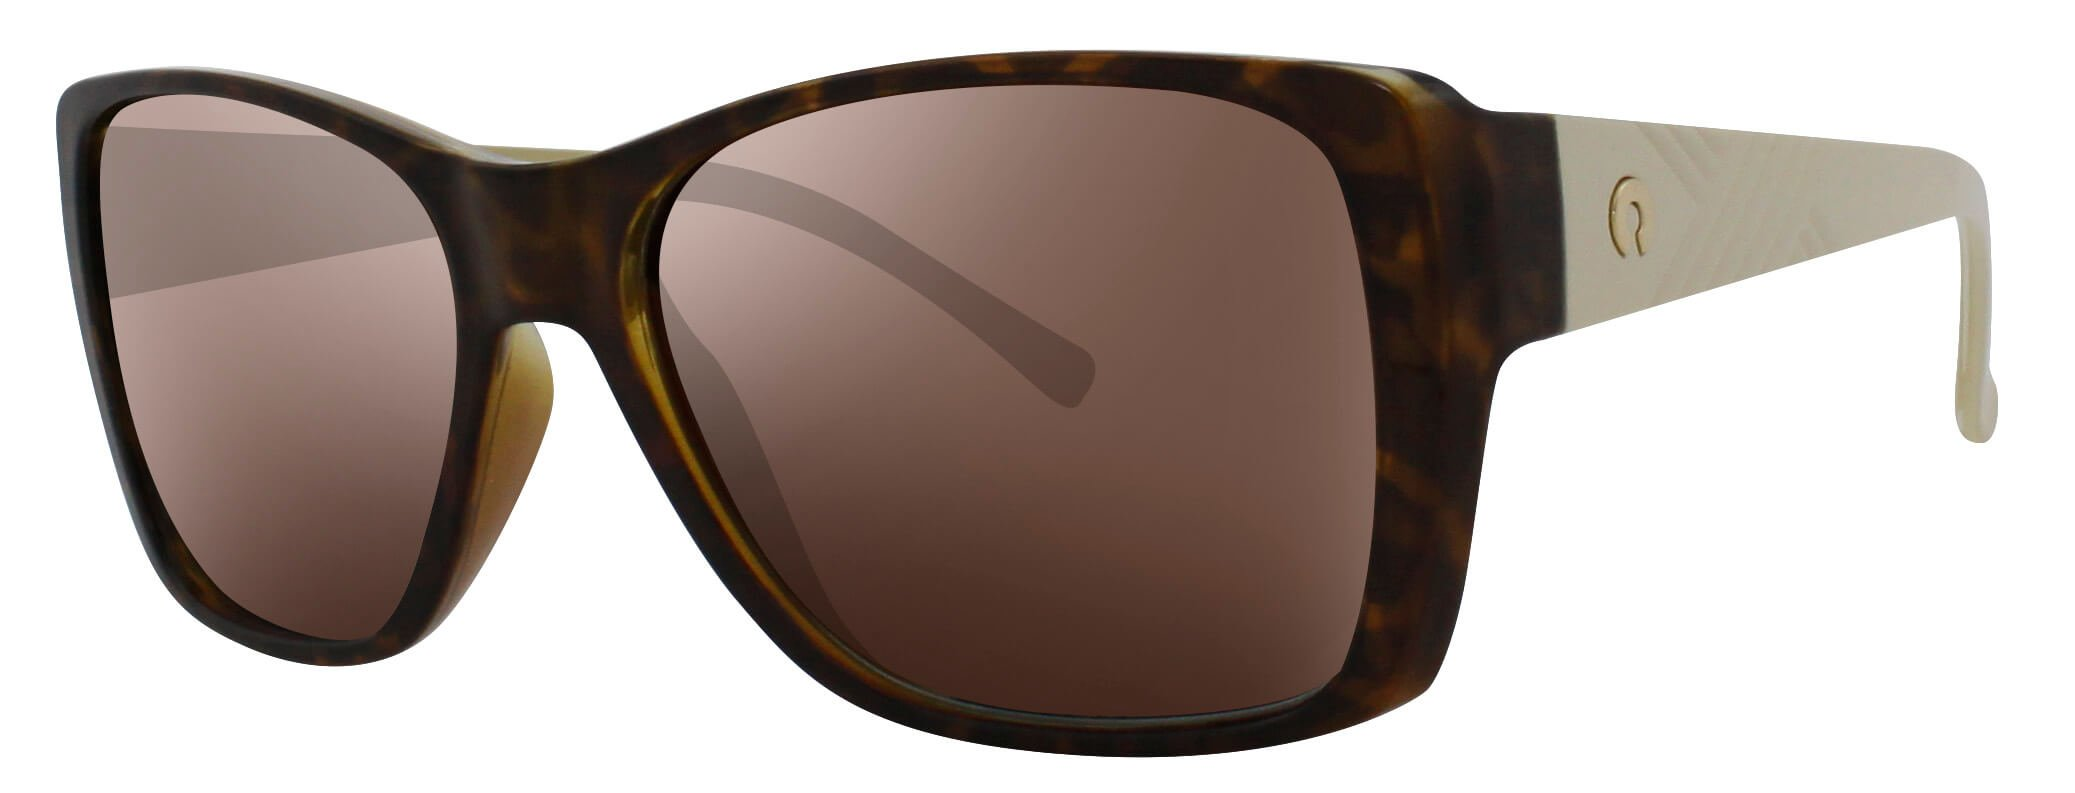 ÓC SECRET SIENNA HAVANA TURTLE/N. CREAM / POLARIZED GRADIENT BROWN